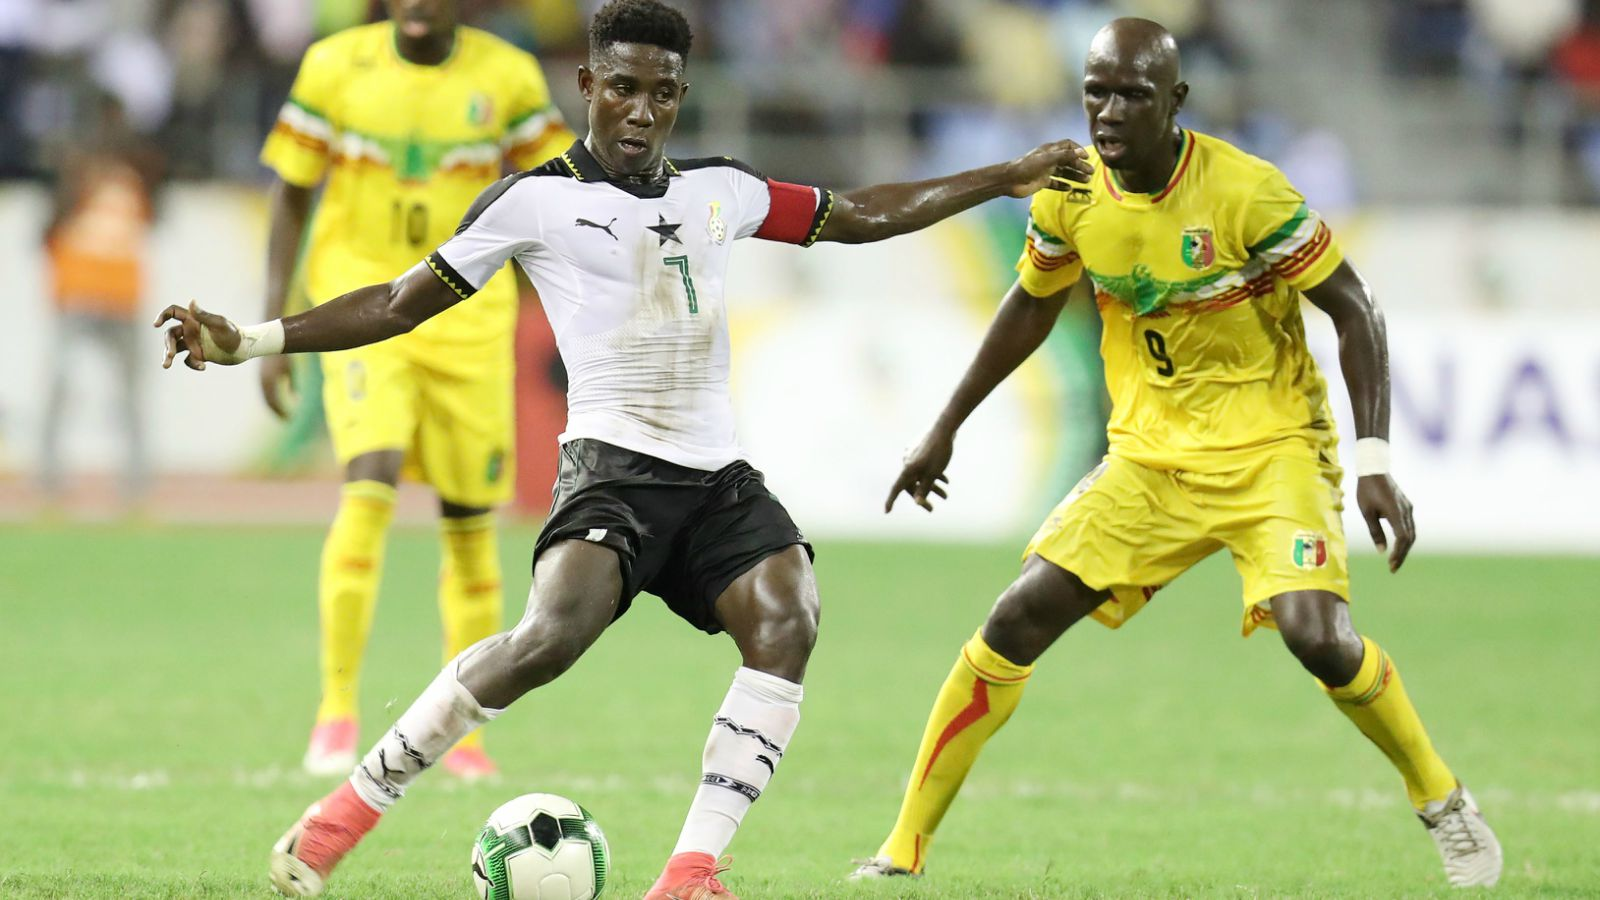 Isaac Twum: It will not be easy to beat Niger